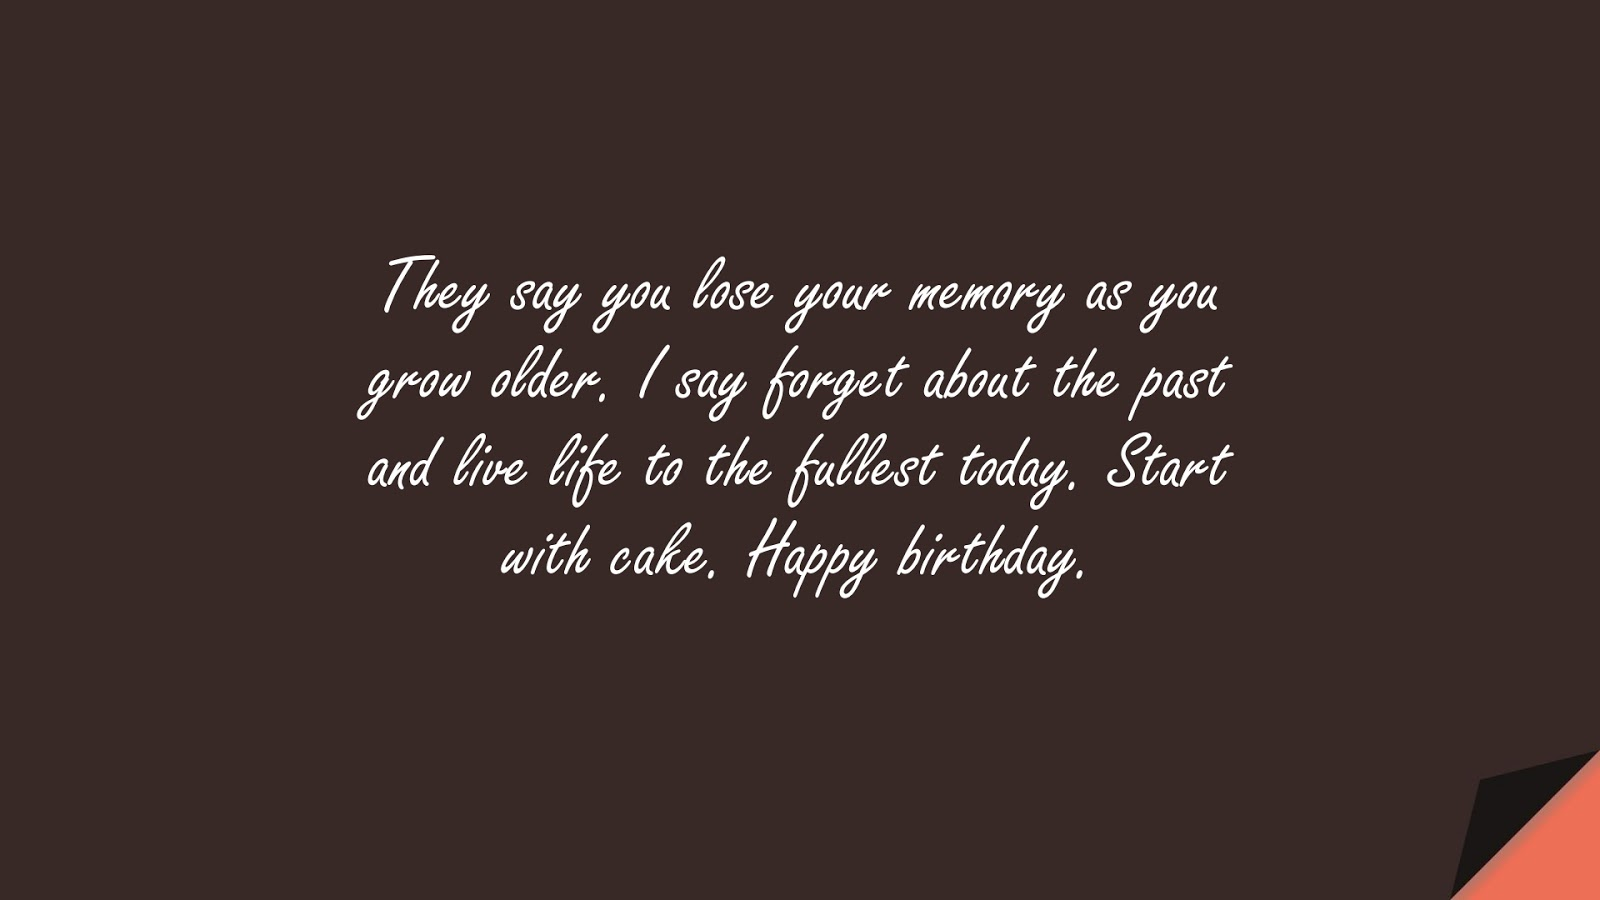 They say you lose your memory as you grow older. I say forget about the past and live life to the fullest today. Start with cake. Happy birthday.FALSE